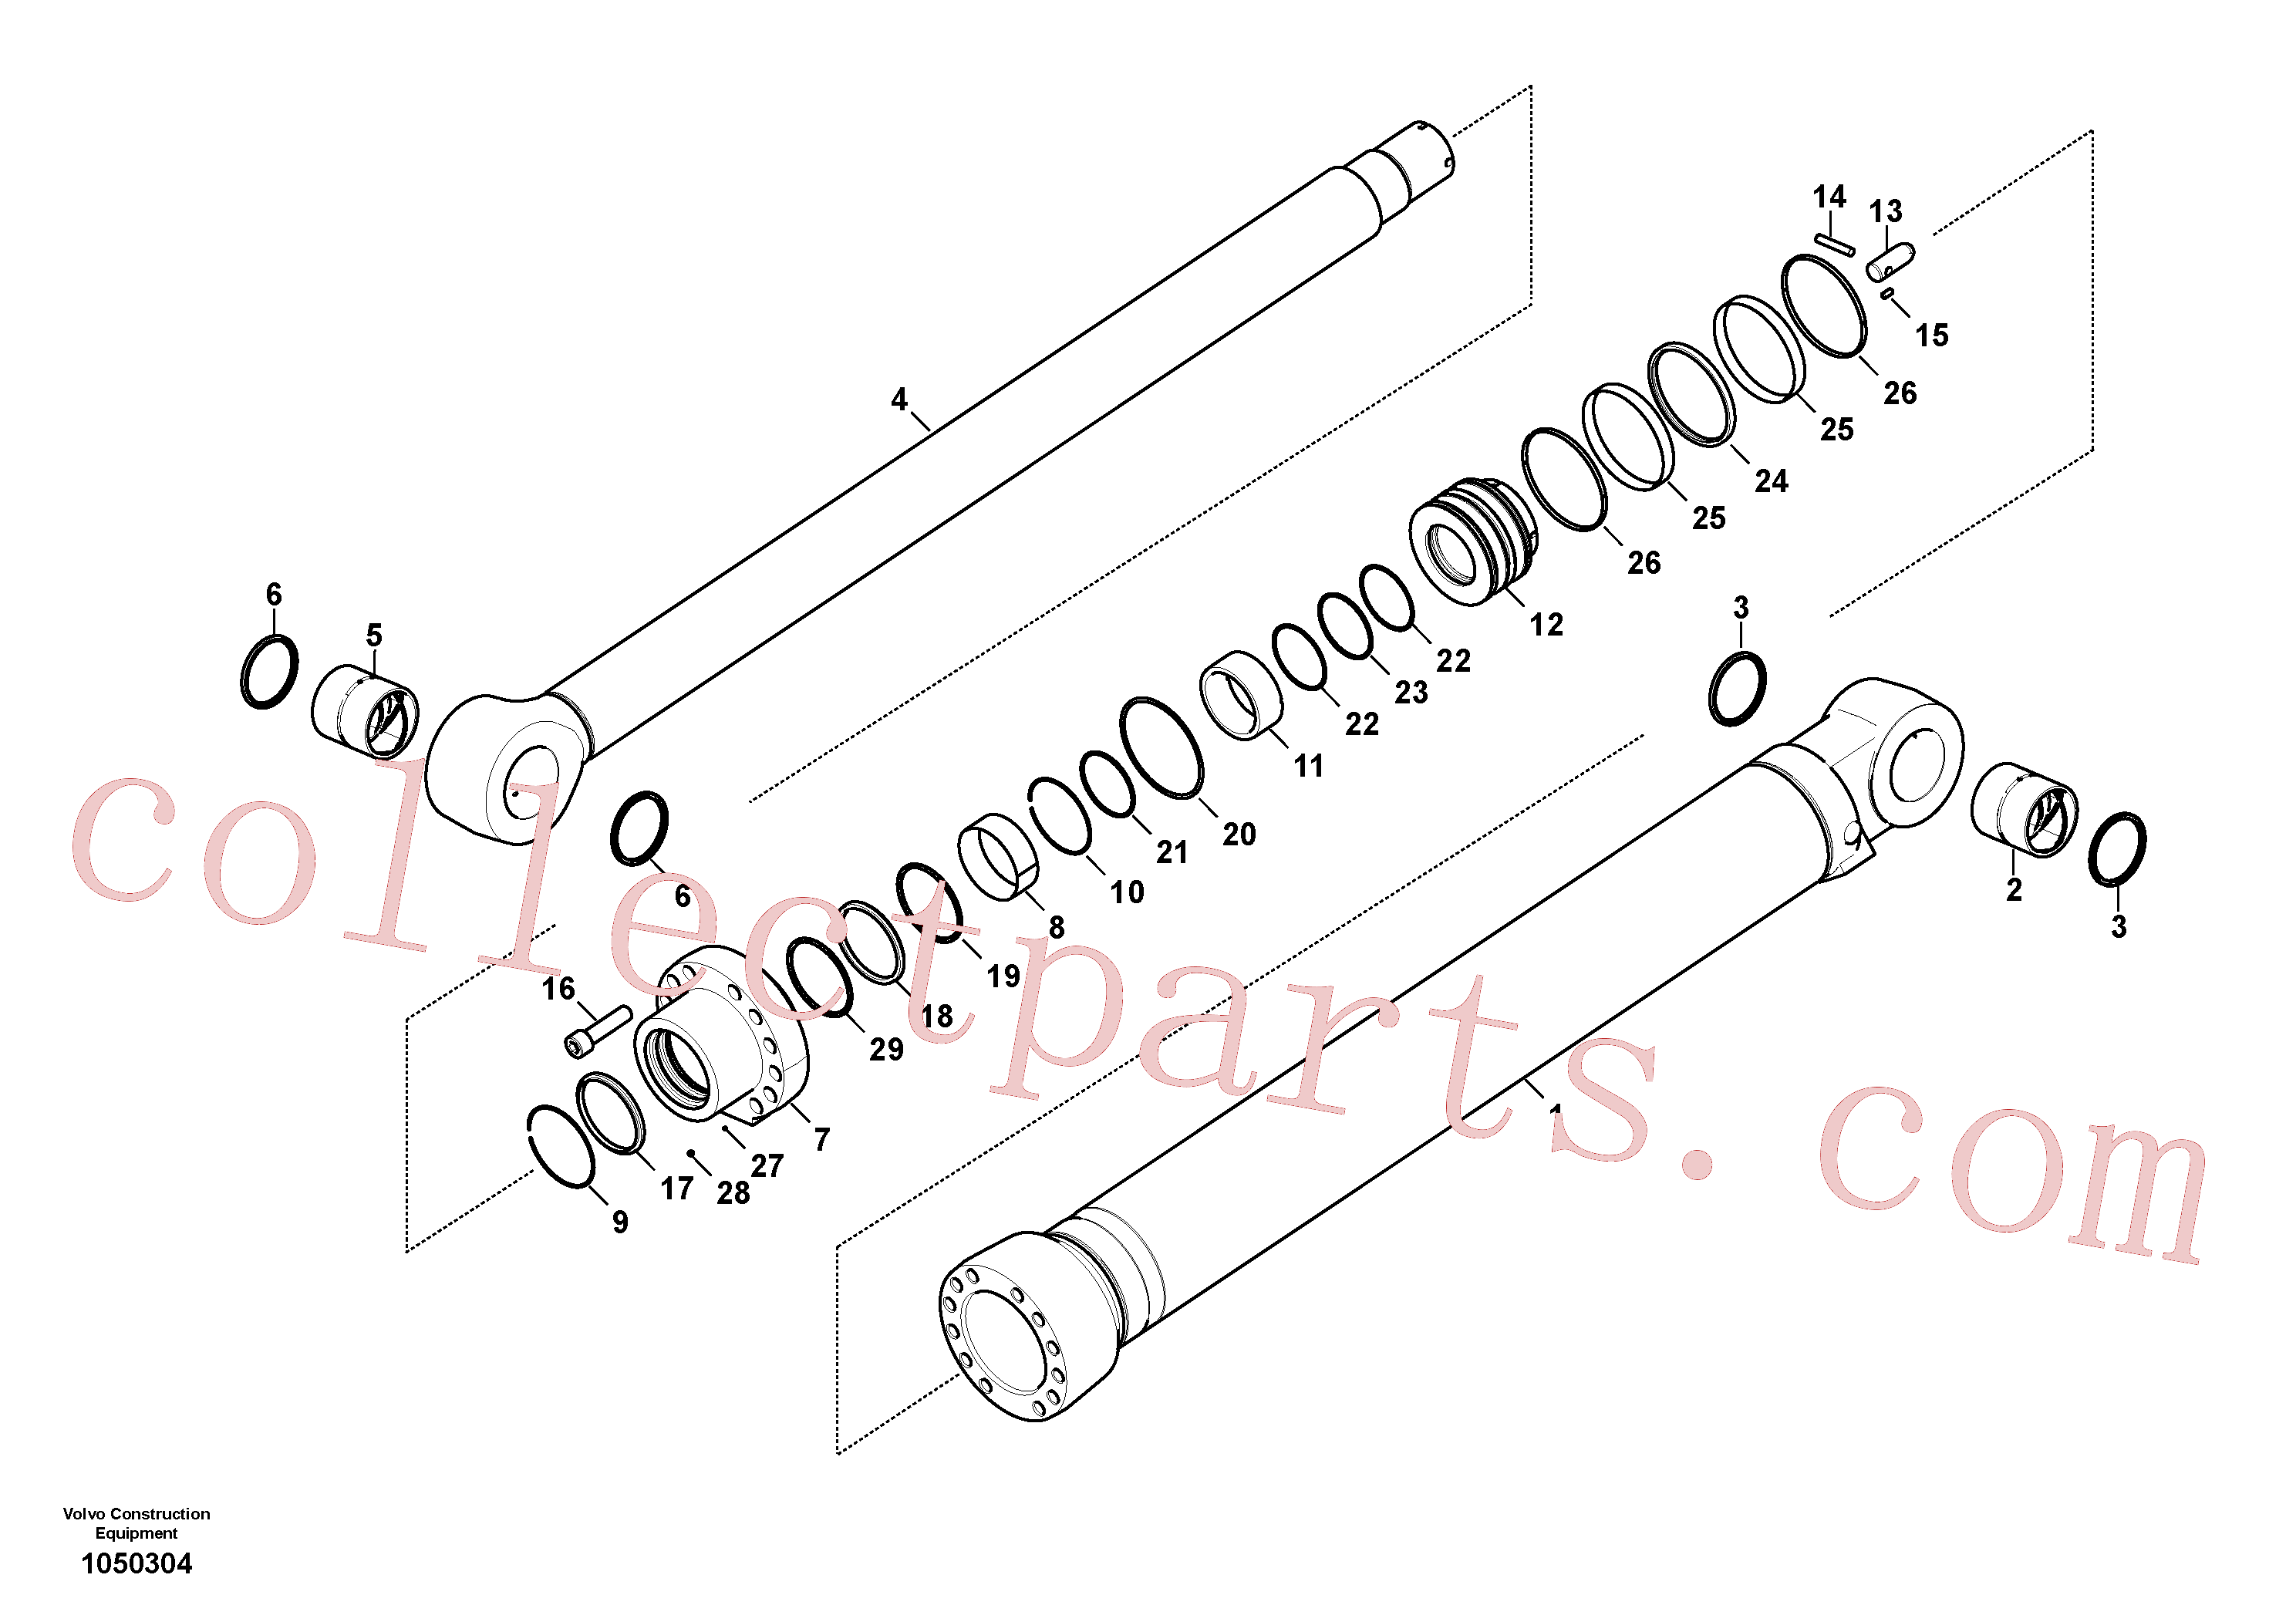 VOE14597317 for Volvo Dipper arm cylinder(1050304 assembly)